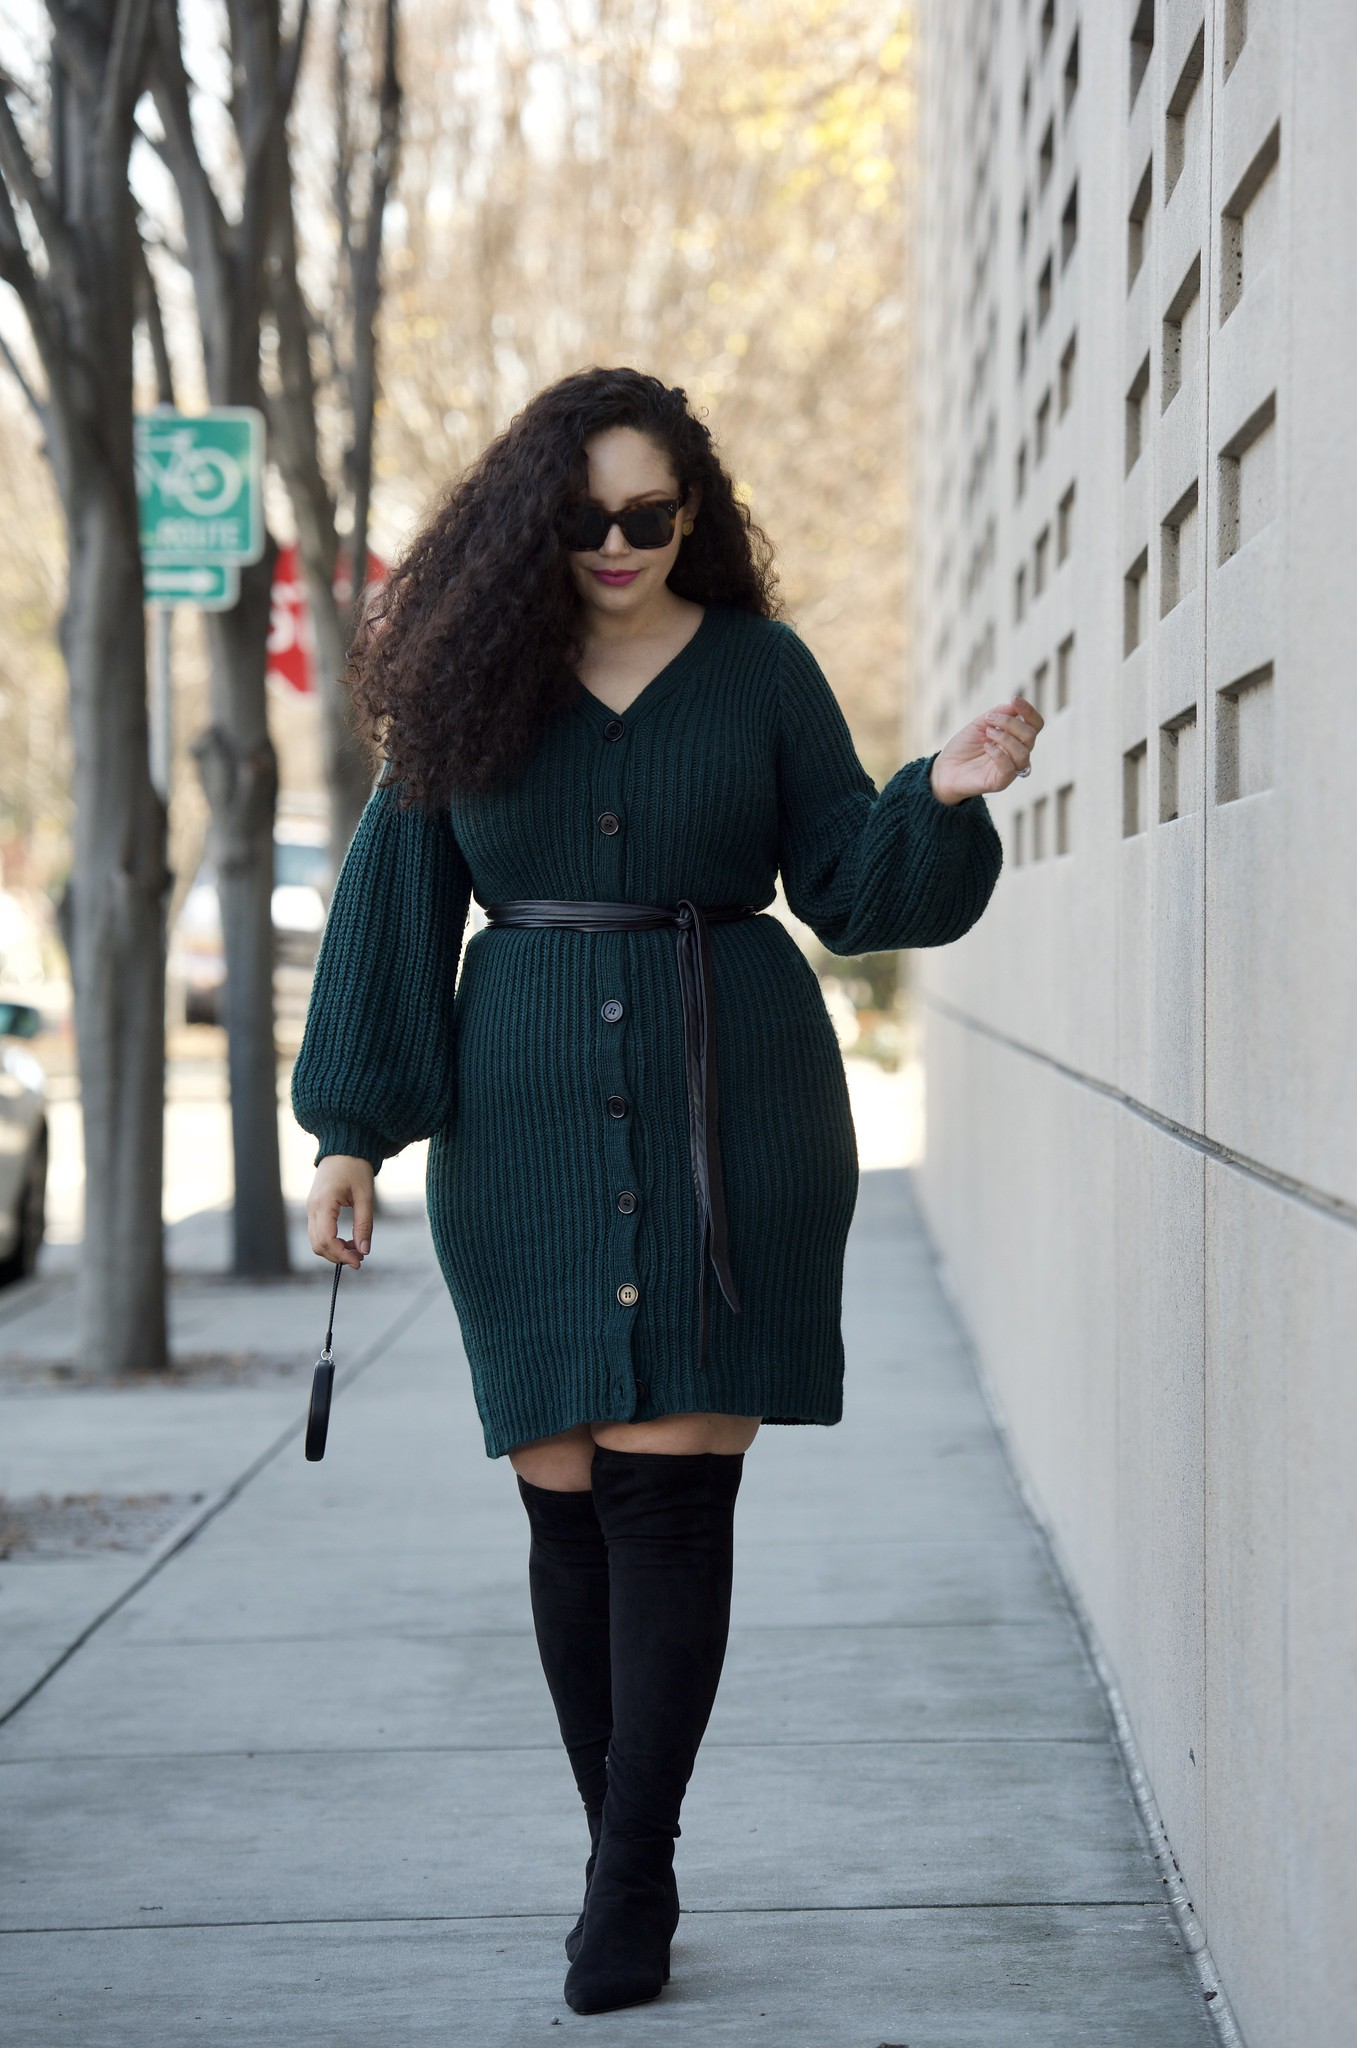 This is my Favorite Dress Style to Wear Right Now via Girl With Curves #curvyconfidence #bodypositive #plussizefashion #widecalfboots